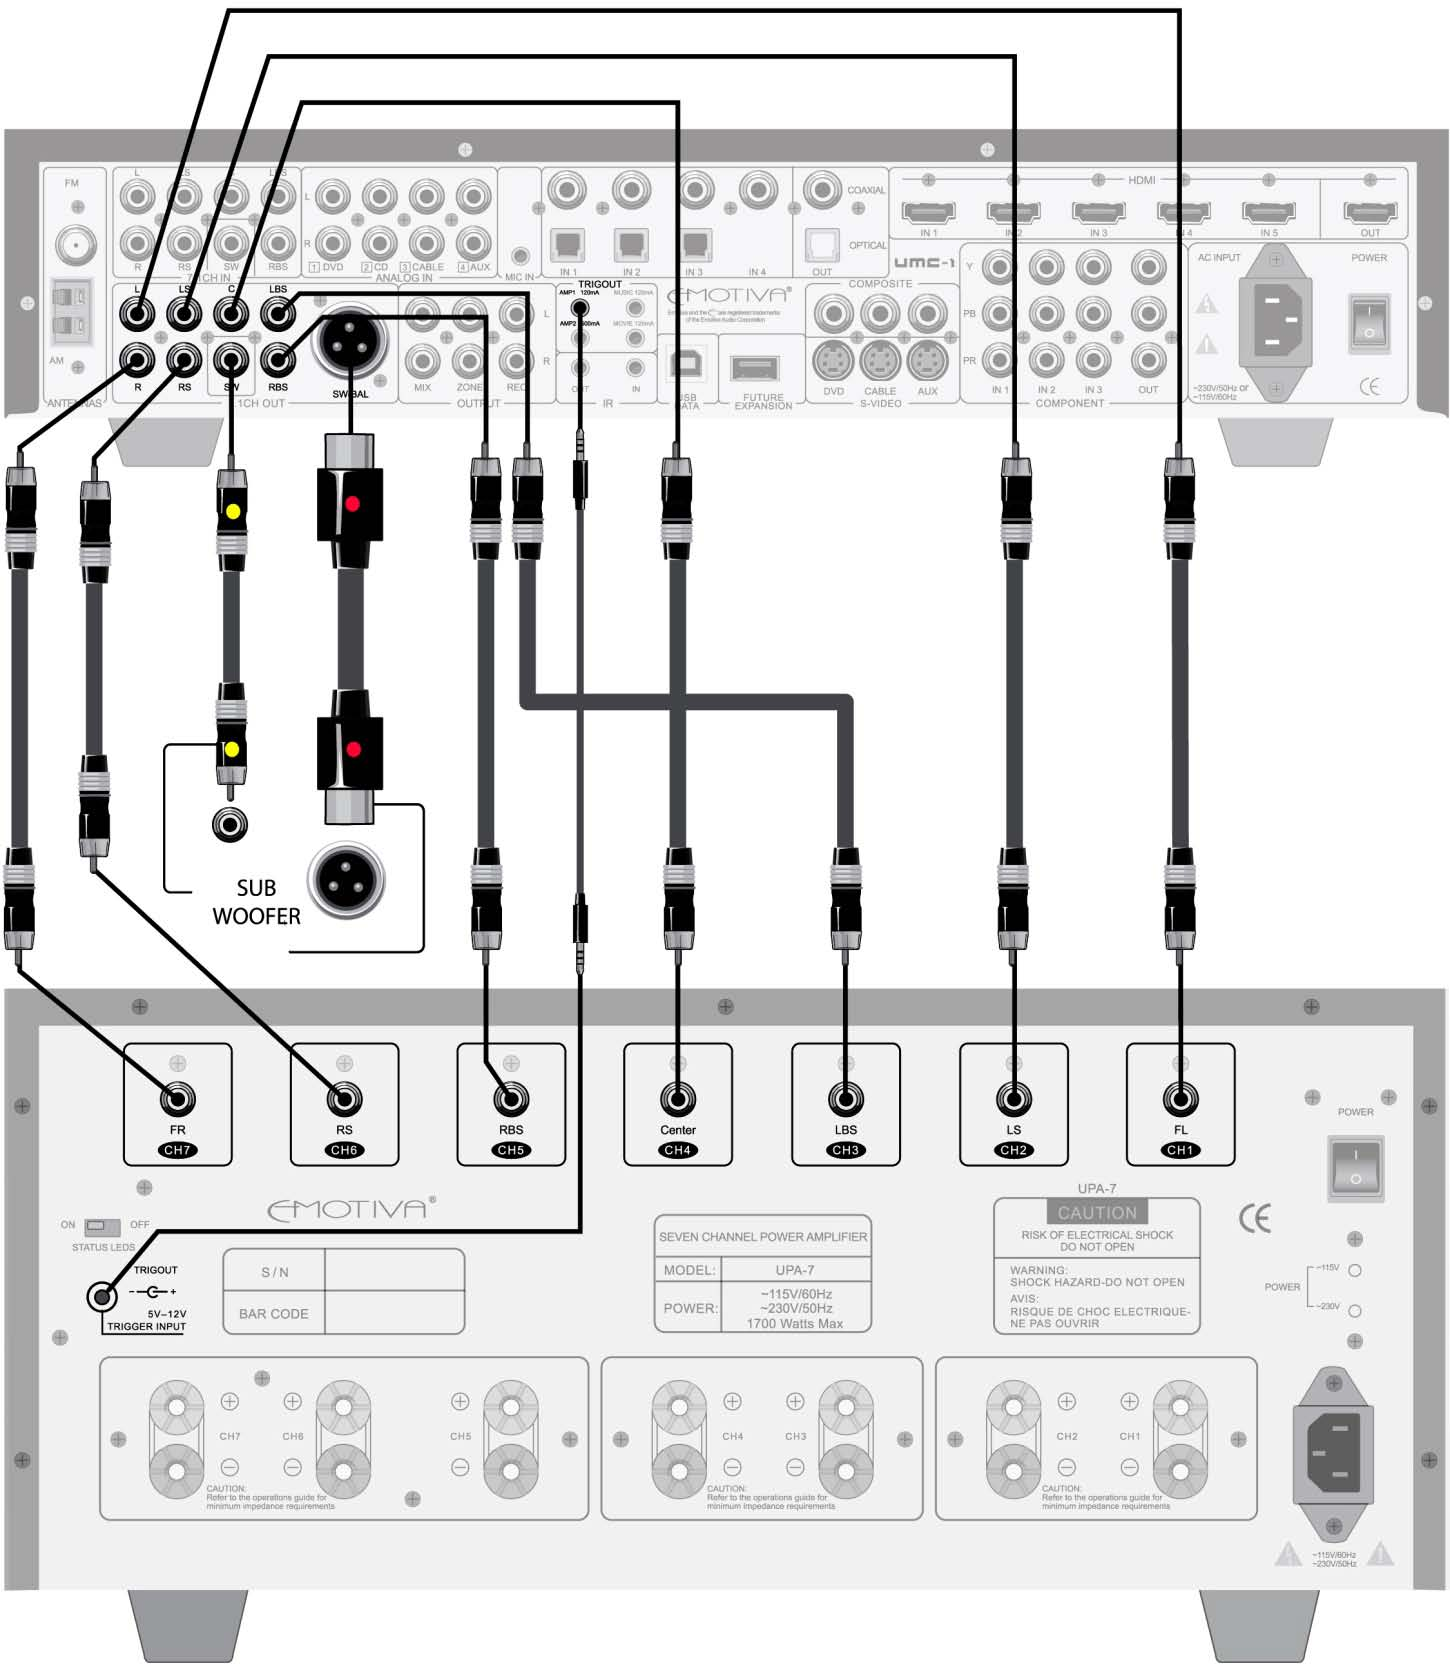 5 Umc 1 Front Panel Layout Rear Remote Control Pdf Audio Visual System Hook Up Diagram Connecting To A Multi Channel Amplifier Processor Use Good Quality Rca Cables Connect